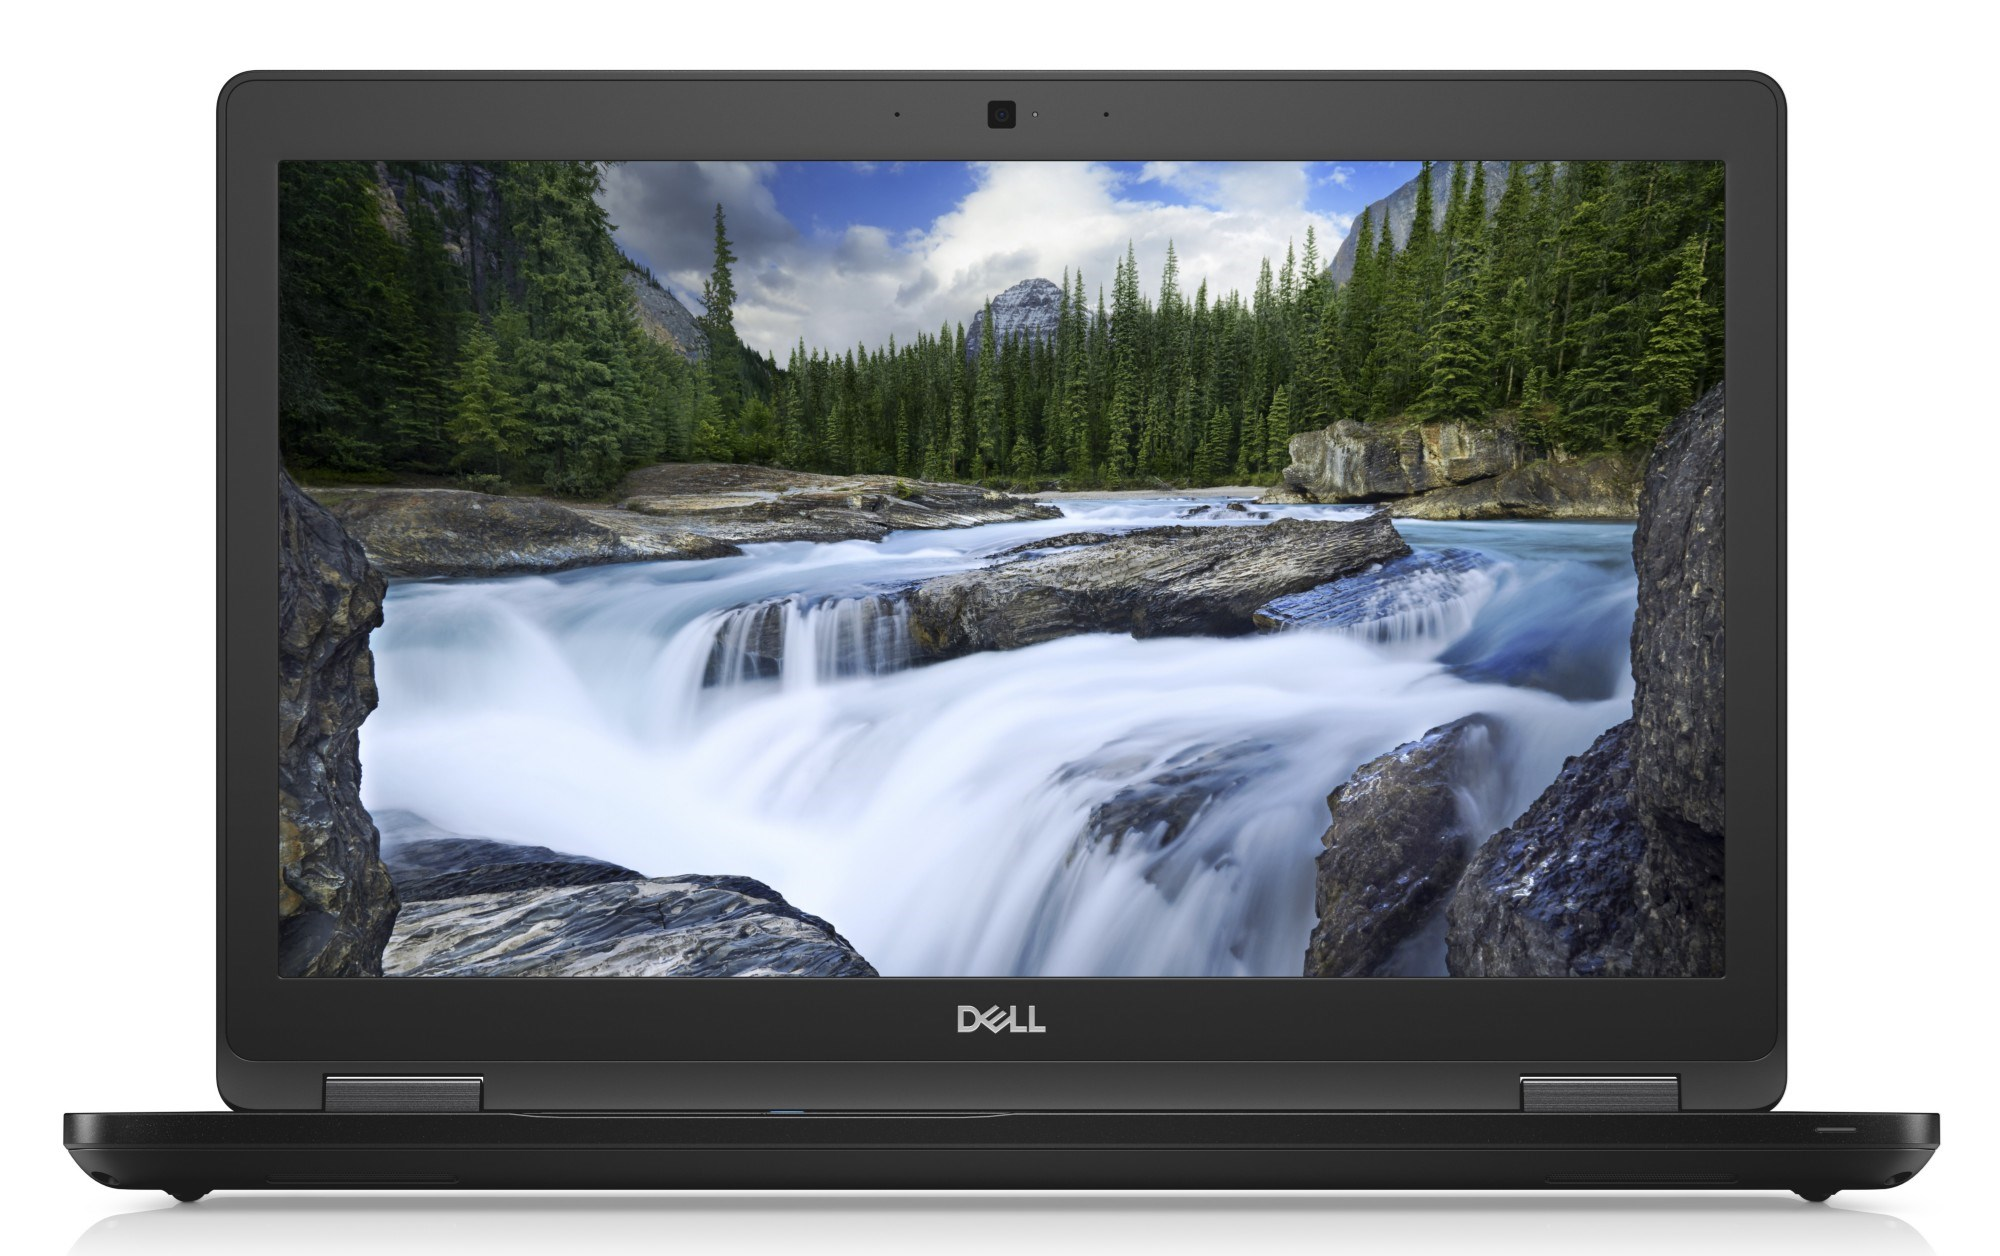 DELL PRECISION 350 INTEL LAN DRIVERS WINDOWS XP